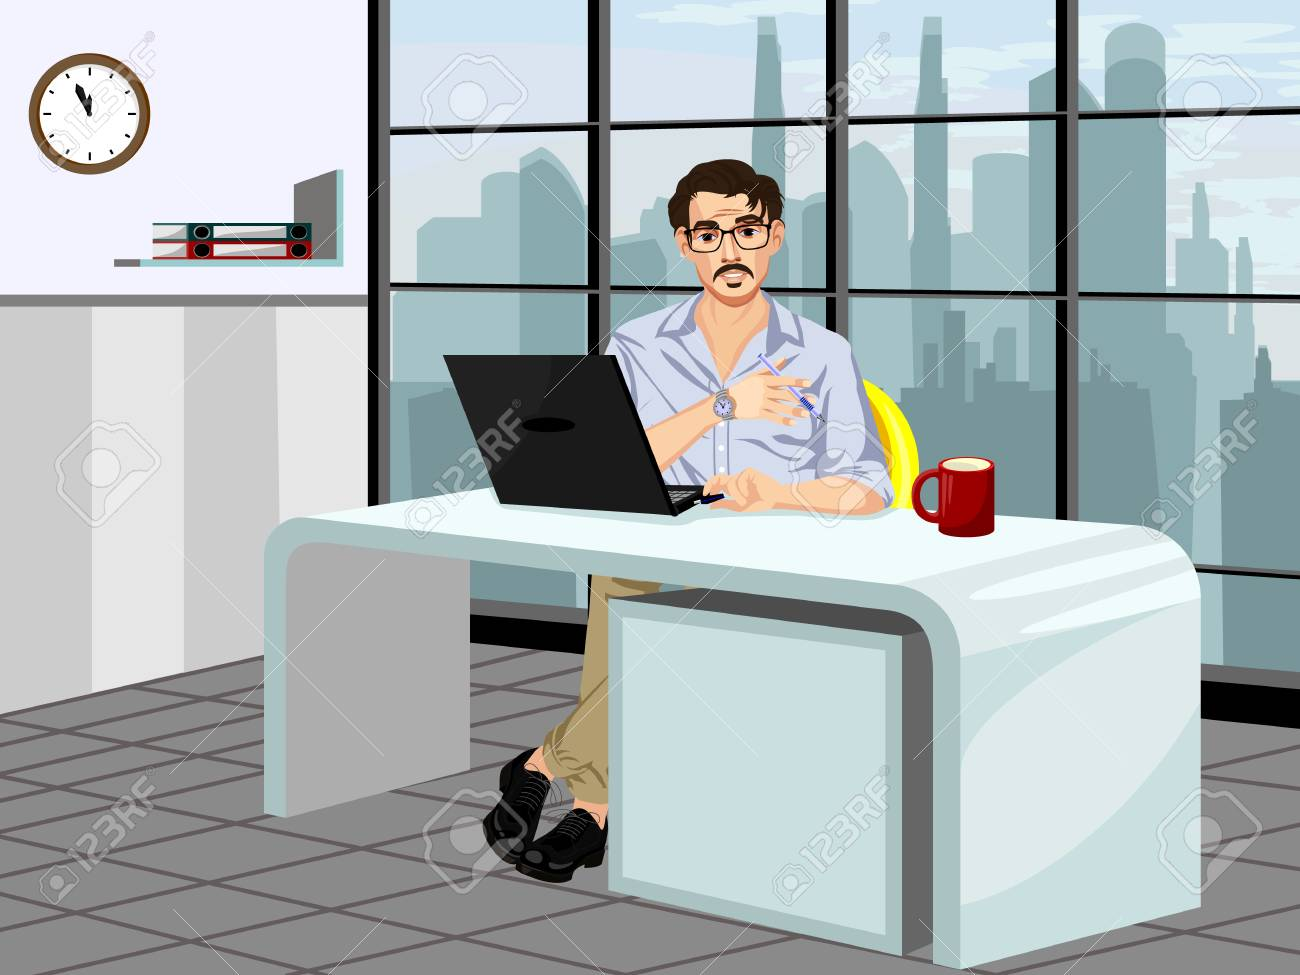 Vector illustration of a fashionable guy in the workplace - 87041483